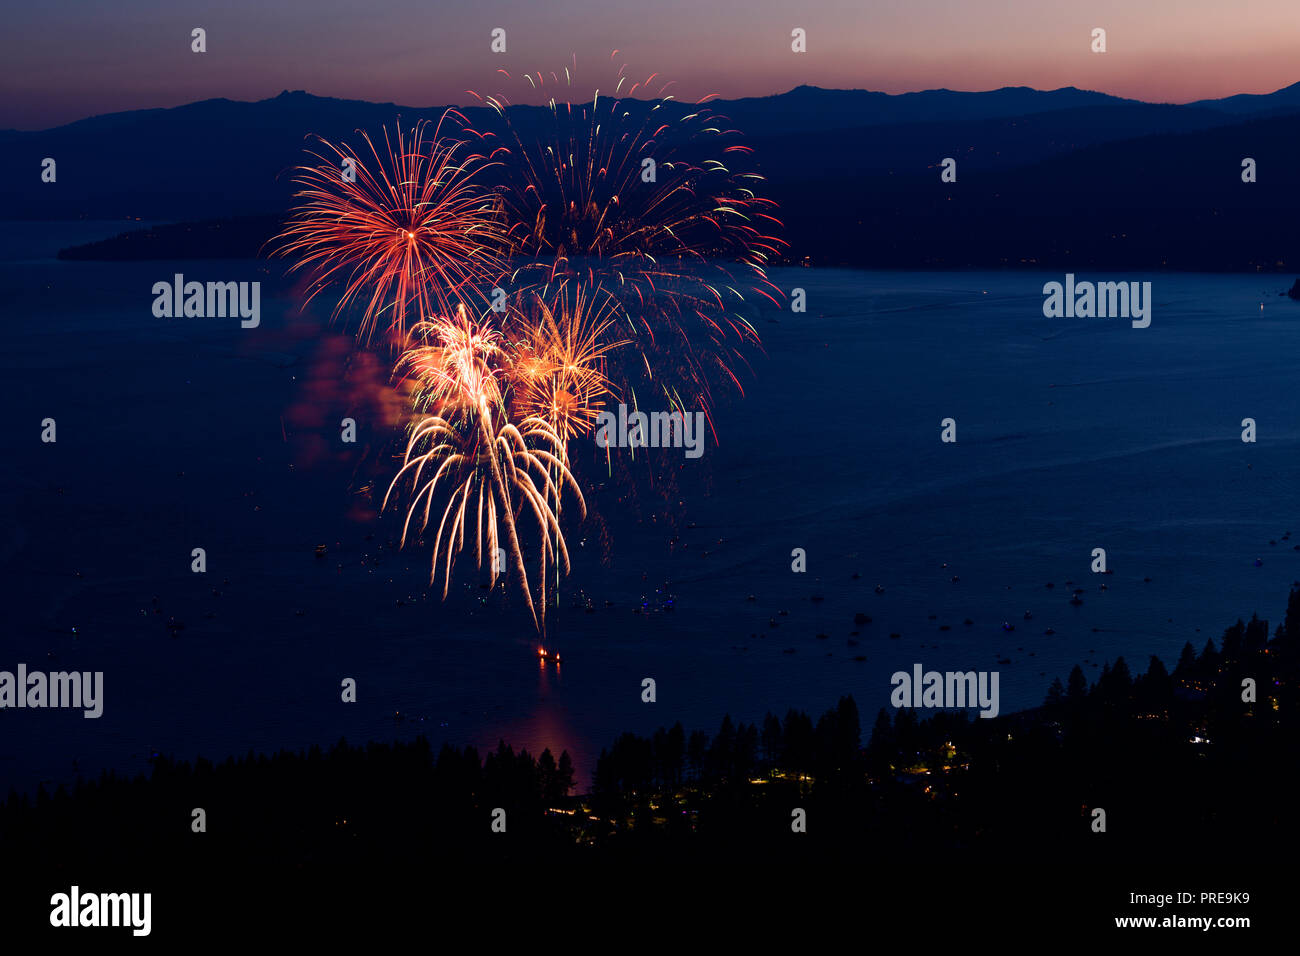 July 3 fireworks show at Kings Beach in North Lake Tahoe, California, USA, 2018. Stock Photo